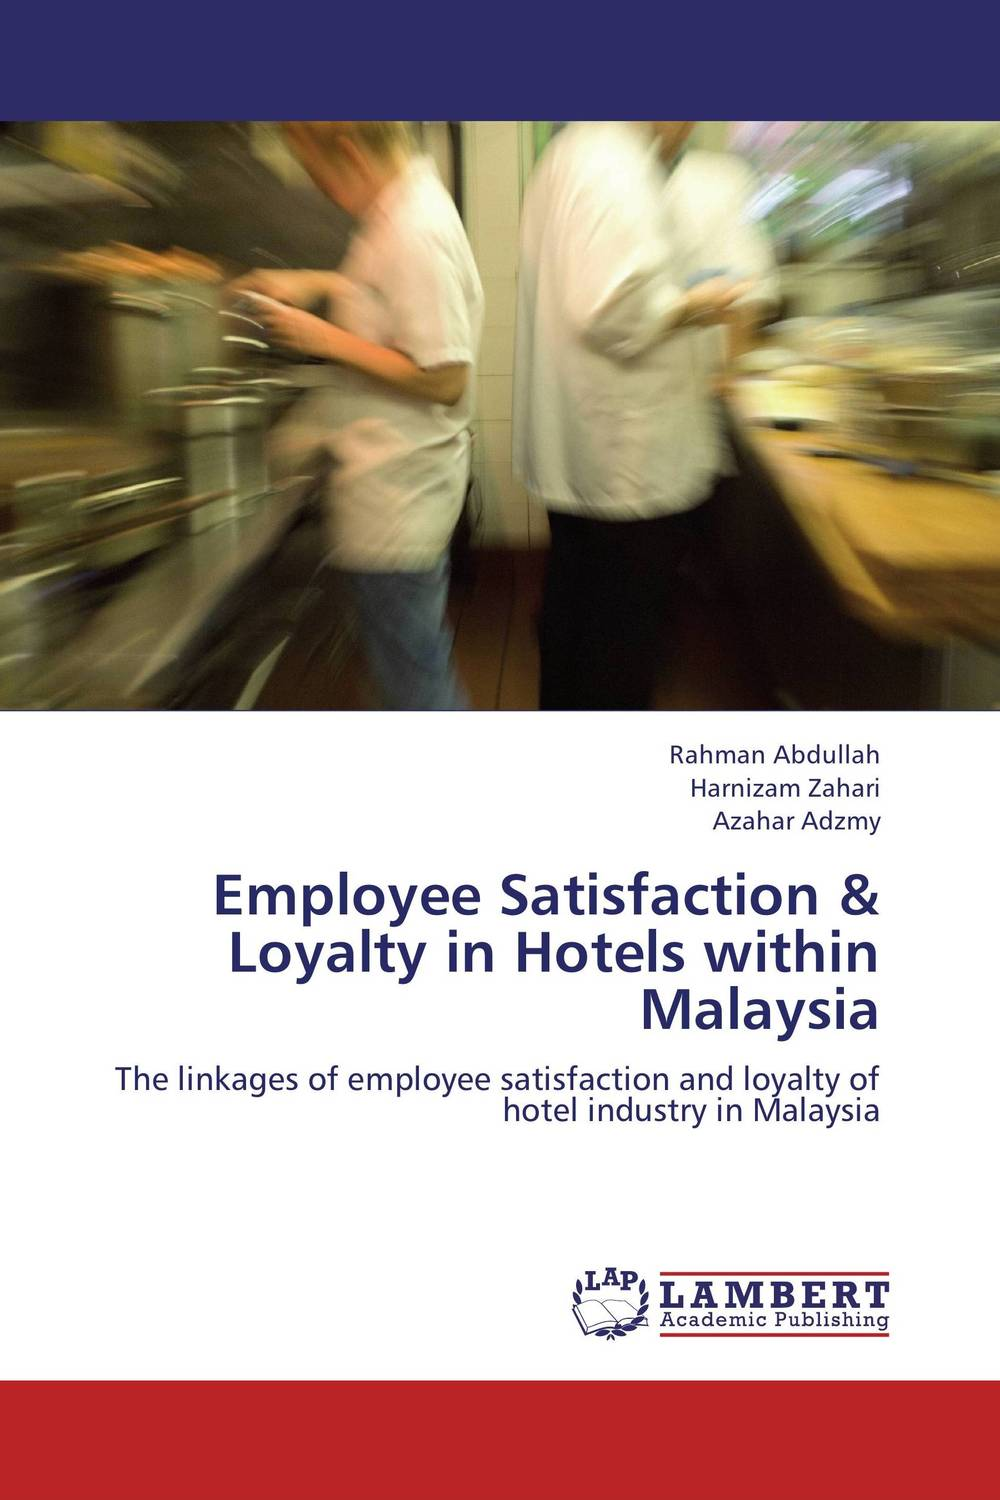 Employee Satisfaction & Loyalty in Hotels within Malaysia impact of job satisfaction on turnover intentions